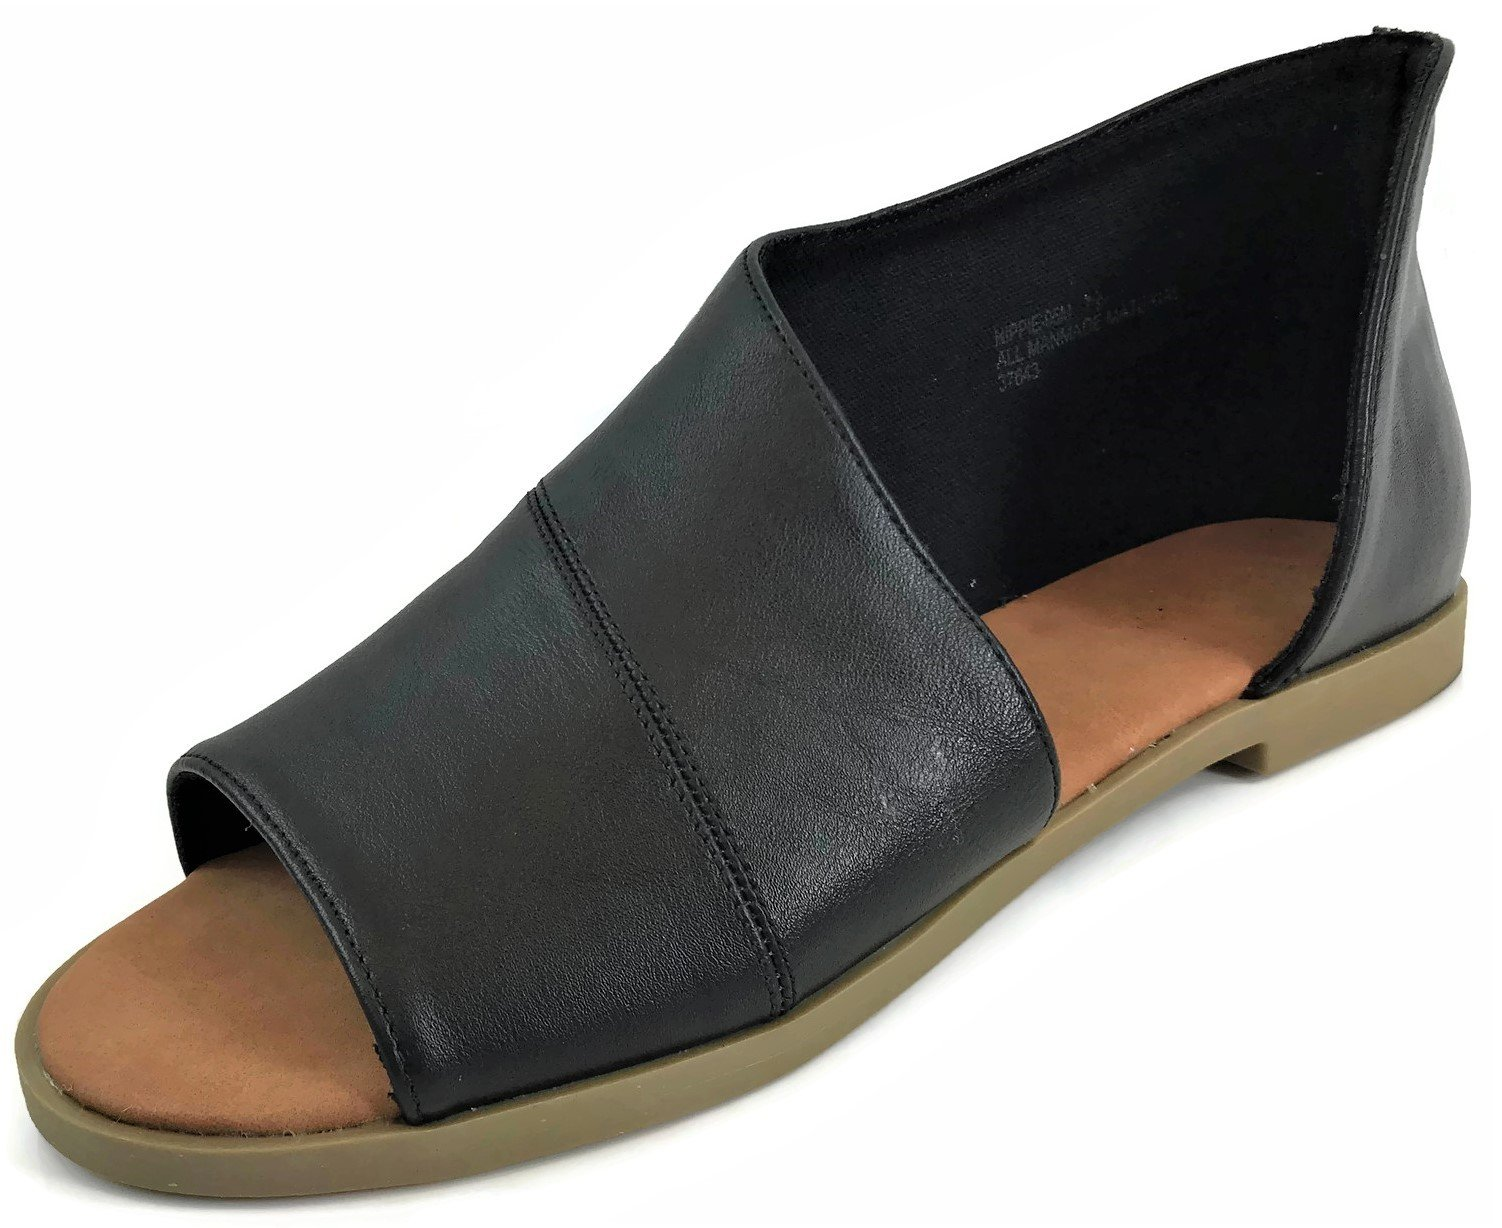 Bamboo Fashion Women's Faux Leather Asymmetrical Sandal Open Toe Half D'Orsay Flats Heel, Black, 8.5